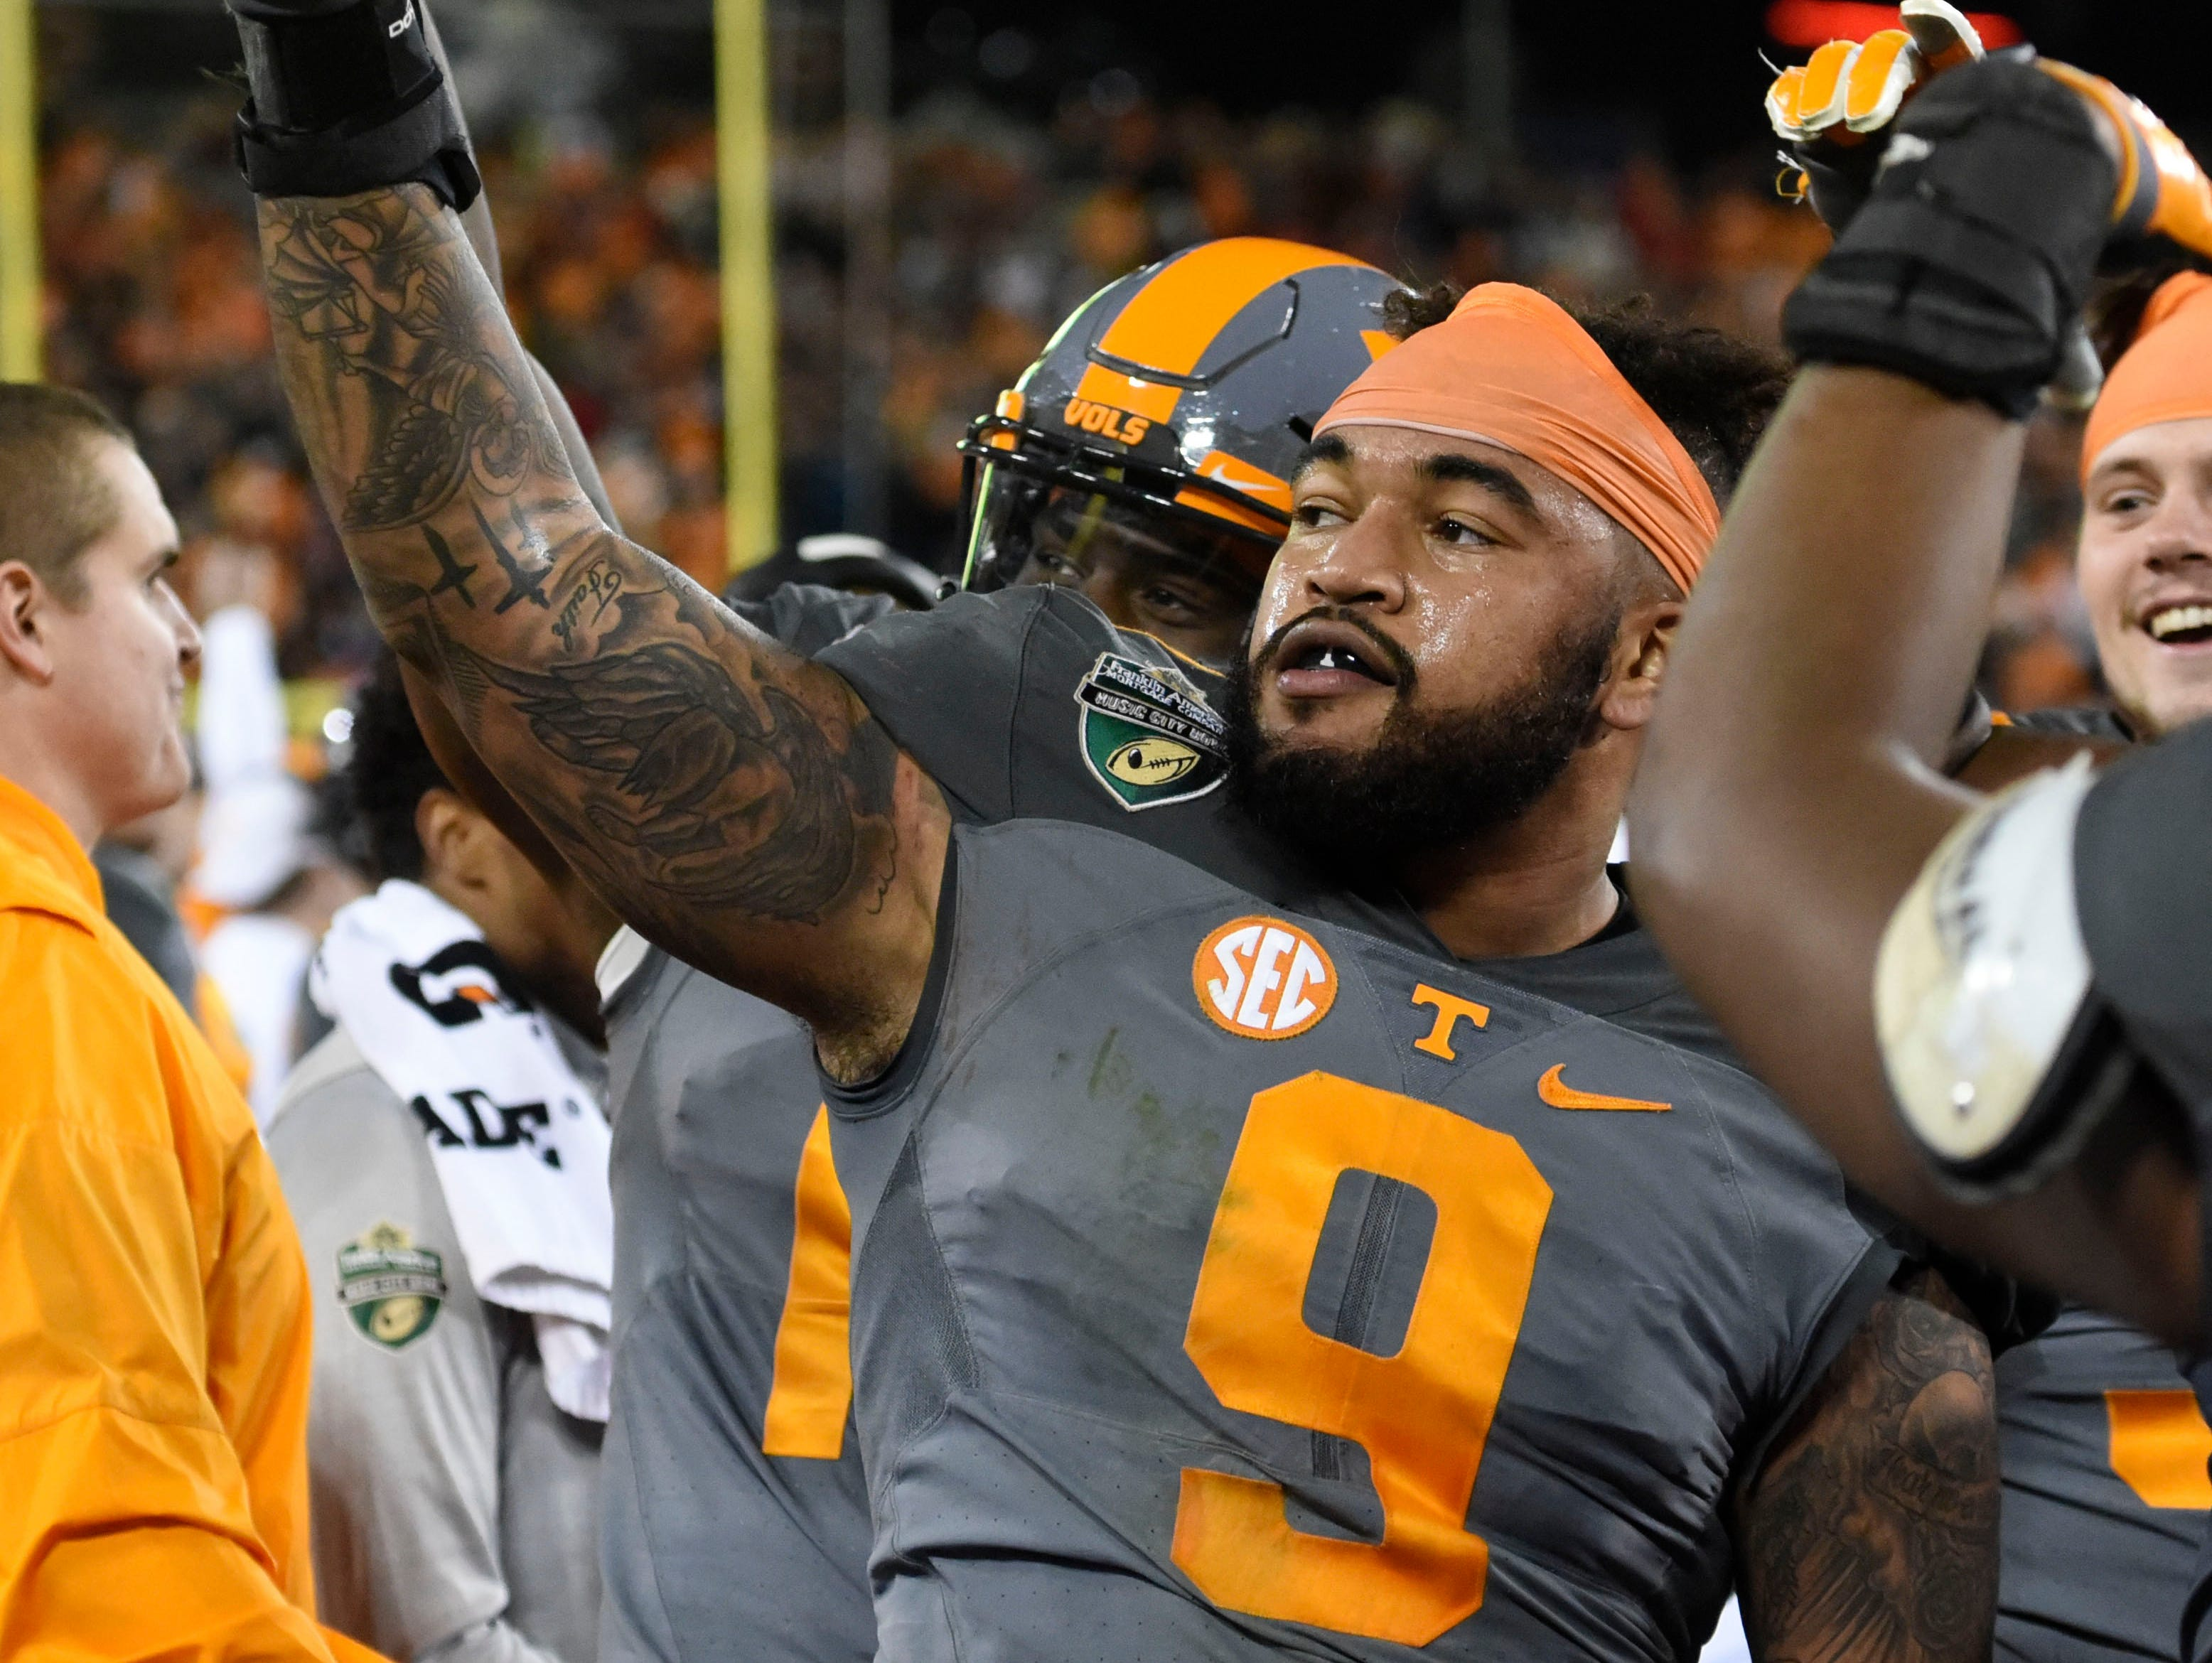 Tennessee defensive end Derek Barnett waves to fans at the end of the Franklin American Mortgage Music City Bowl on Dec. 30 in Nashville.